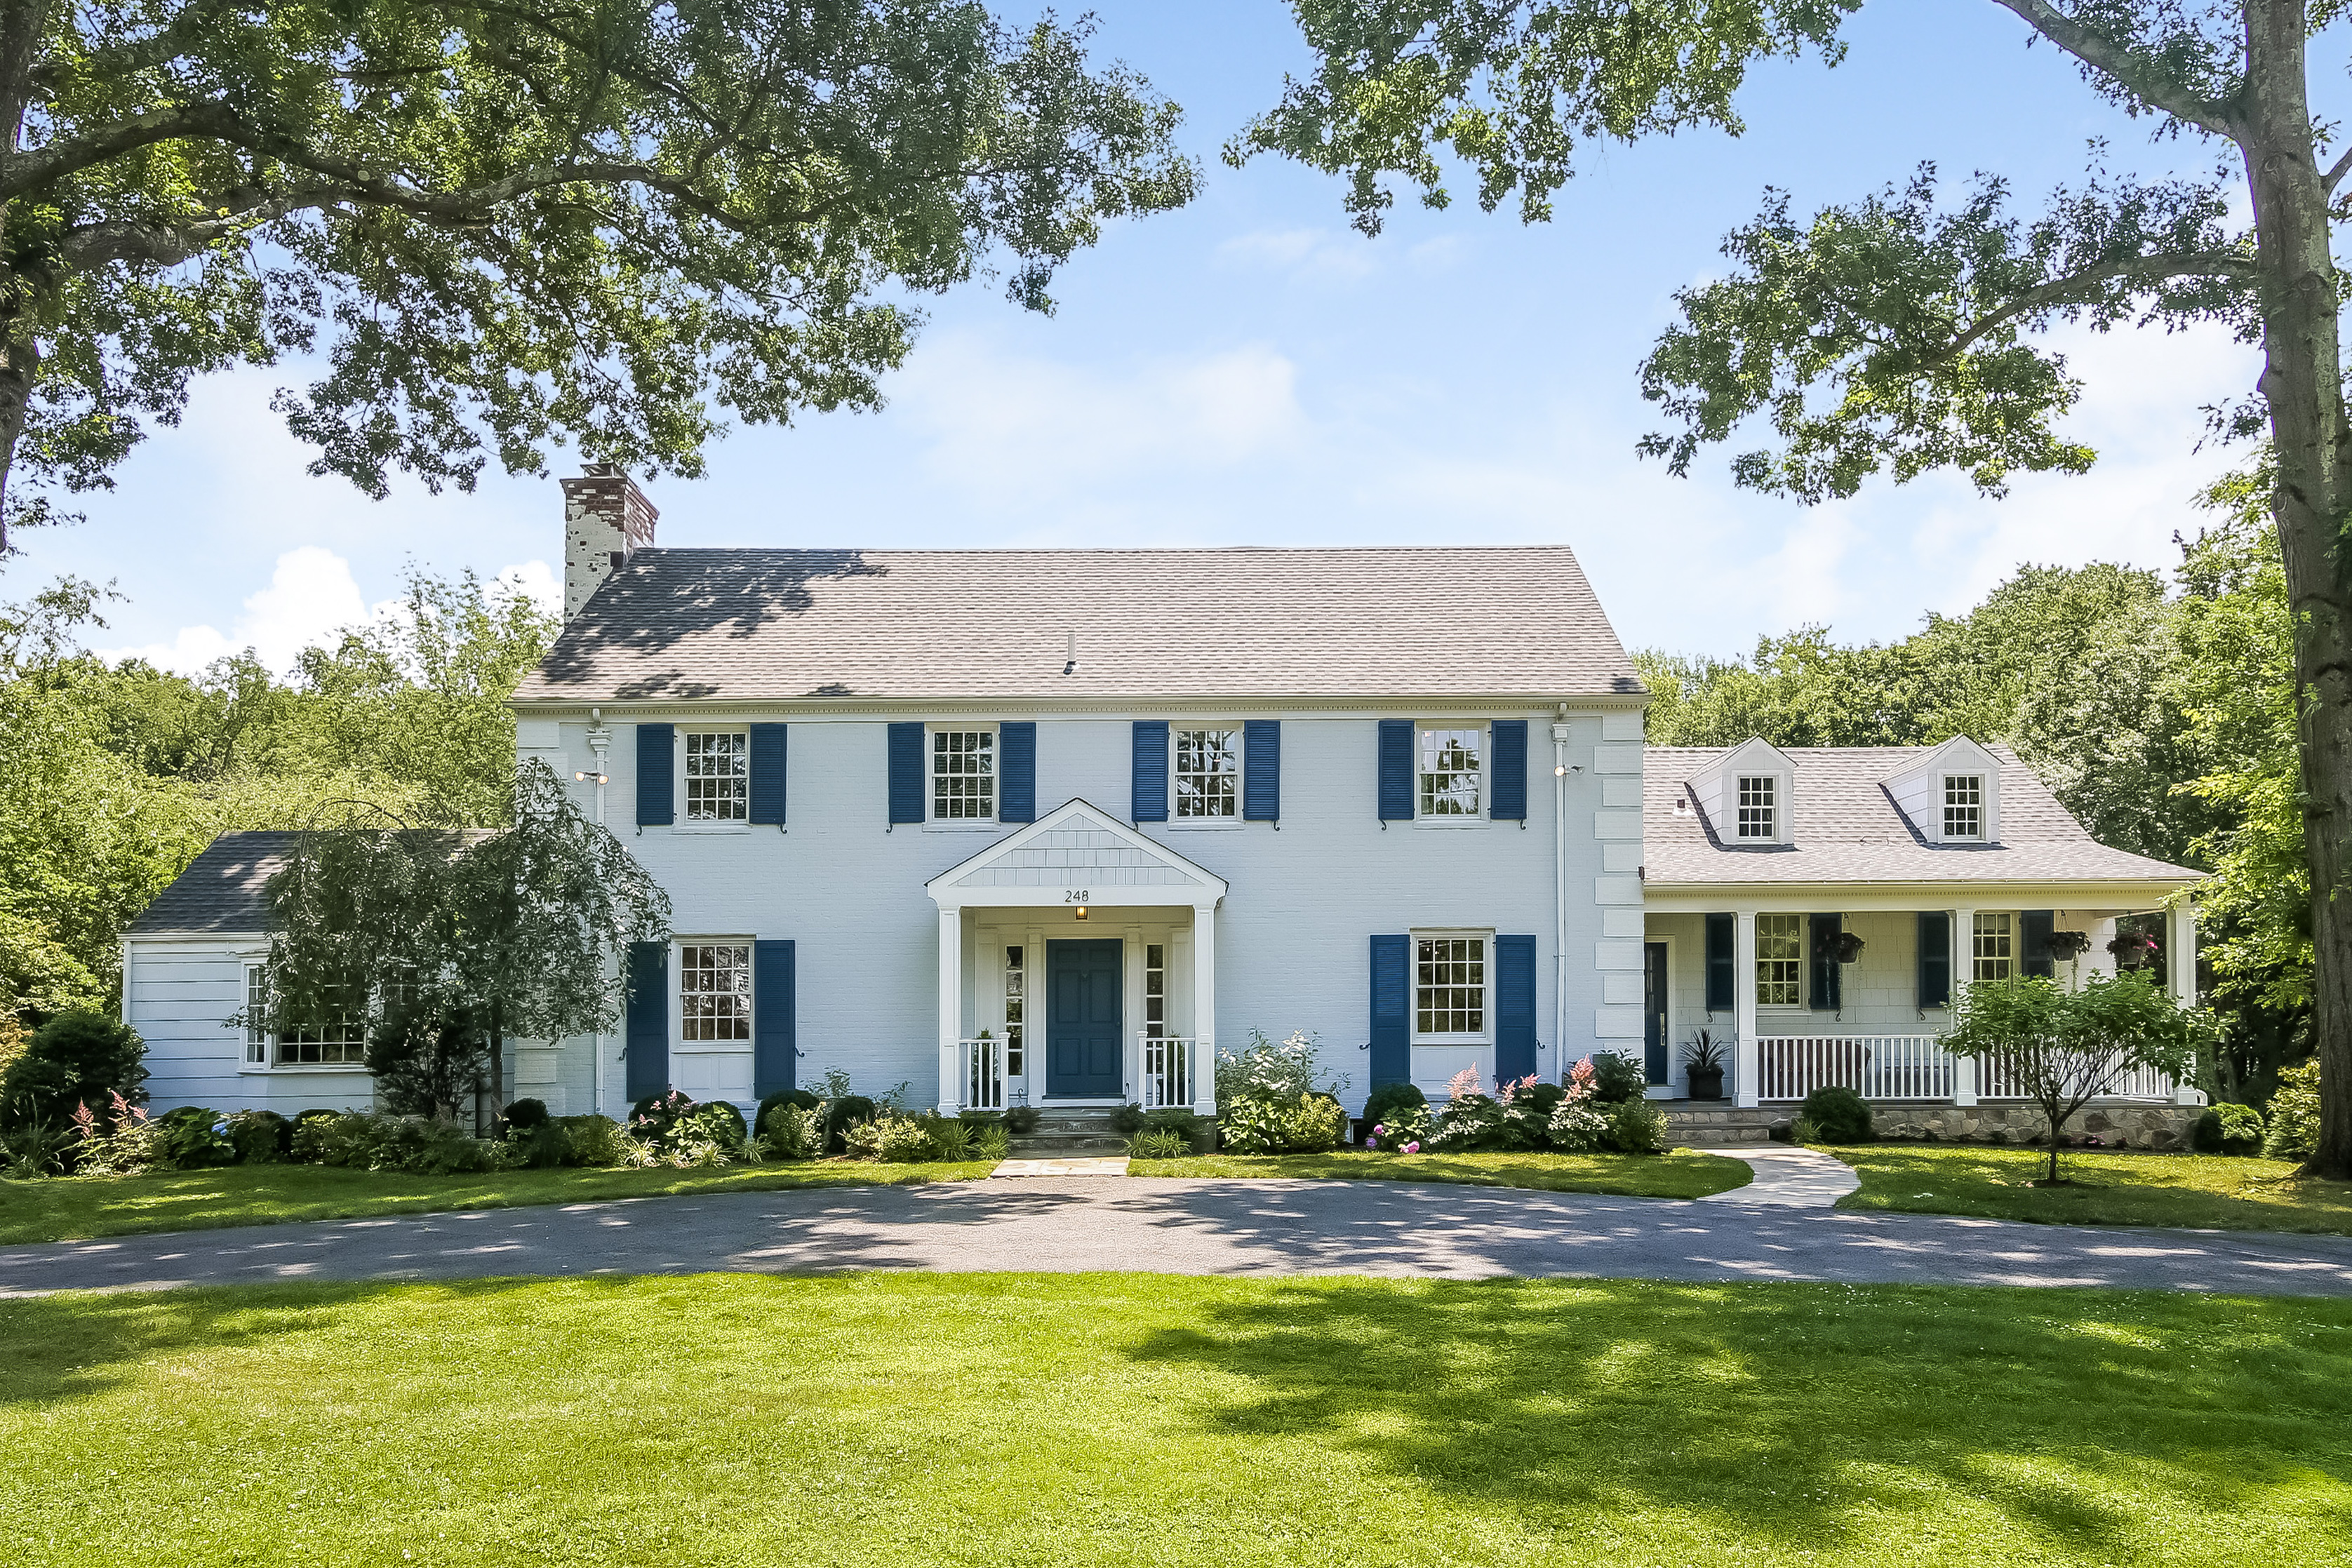 Villa per Vendita alle ore 248 Sterling Road Harrison, New York, 10528 Stati Uniti